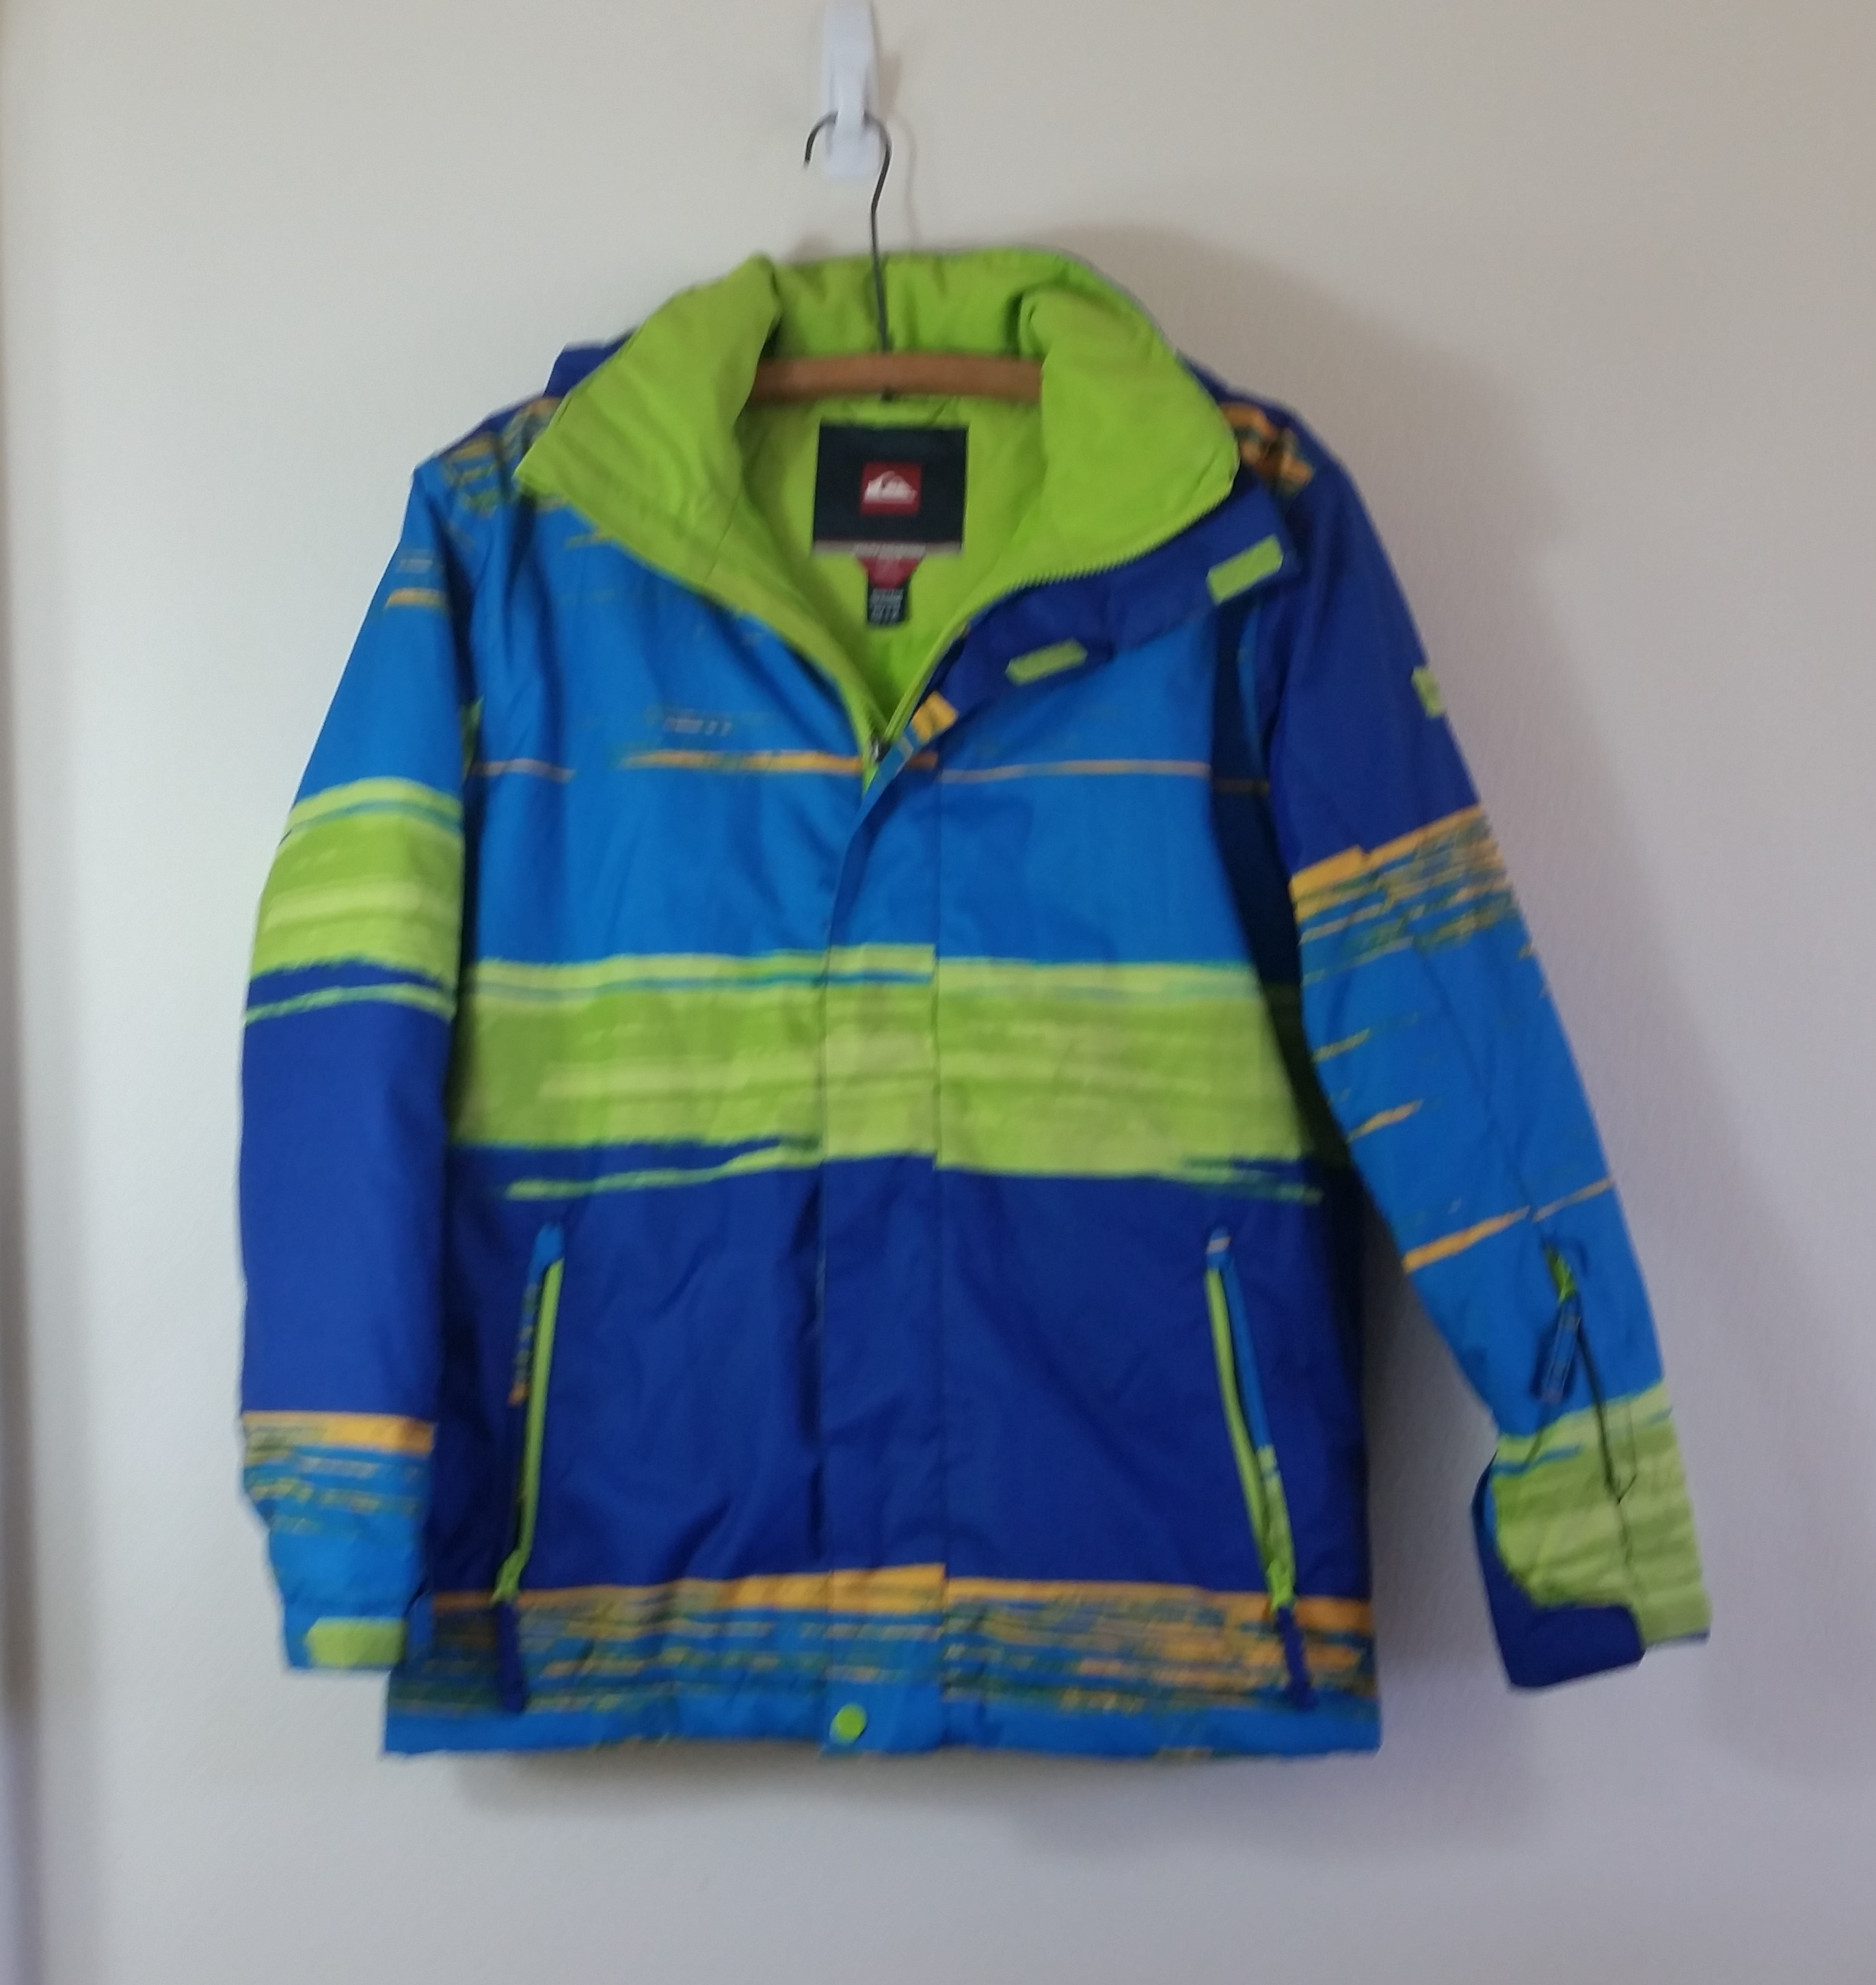 091701575 Pre-Owned Kids Size XL Quicksilver Snowboard Jacket $60 obo